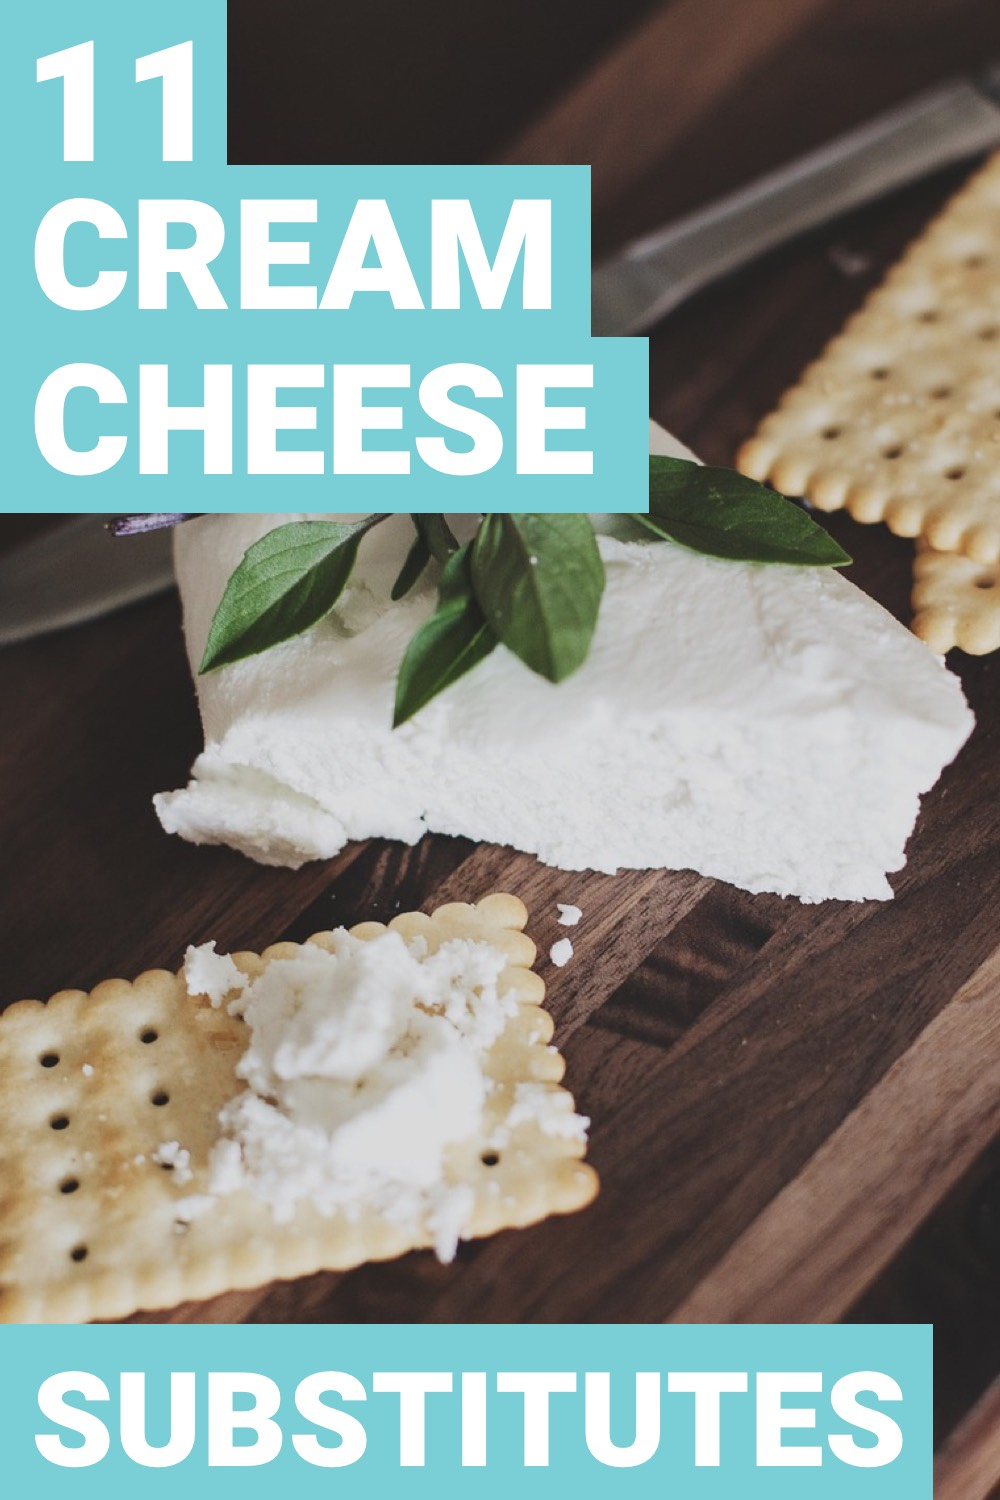 Finding a good food substitute isn't always easy. Cream cheese is one of those tricky foods to find a replacement for. Here are 11 cream cheese substitutes.